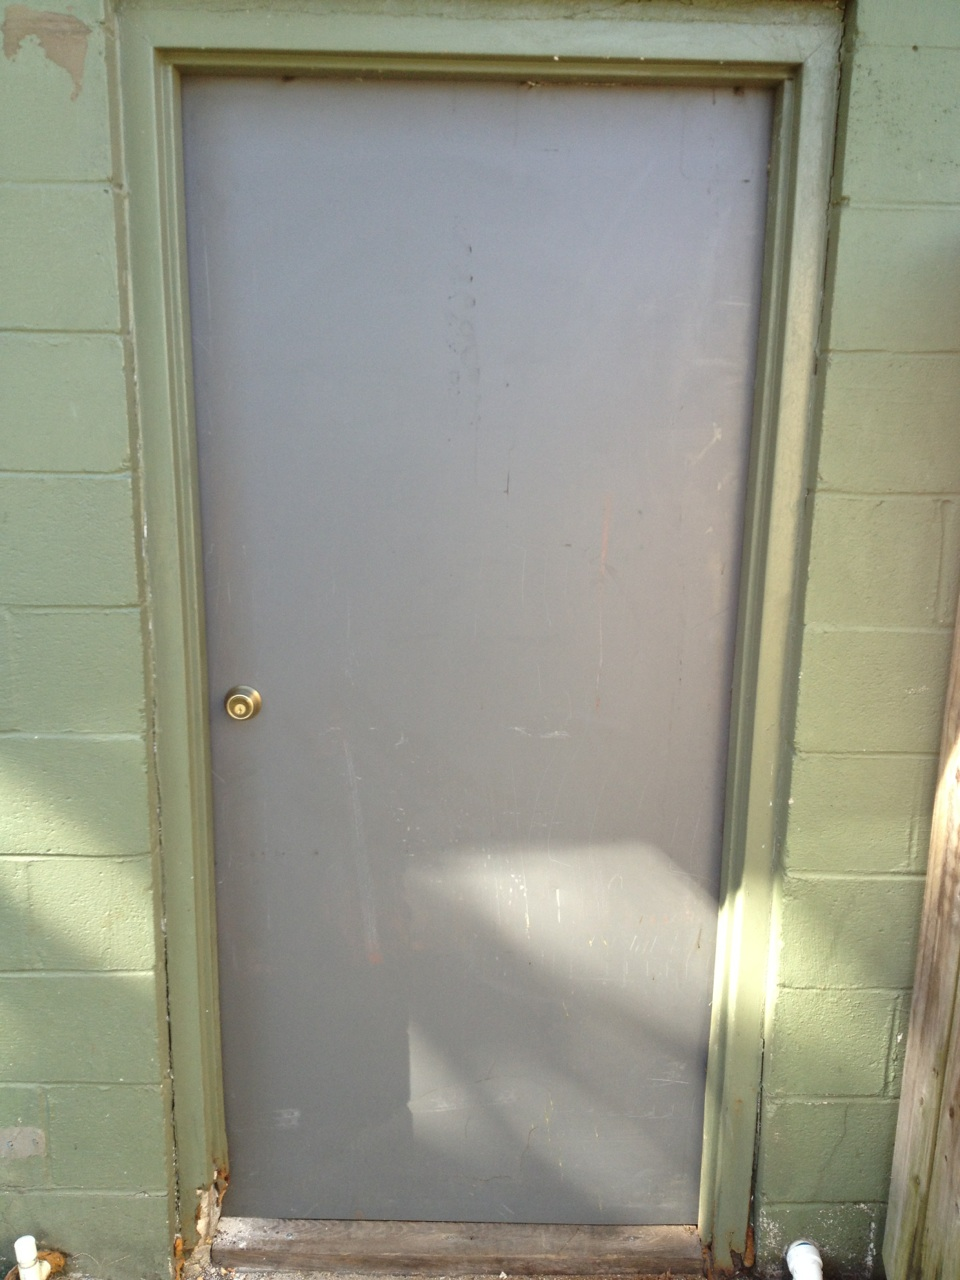 The Rear Door Forcible Entry And Forcible Exit